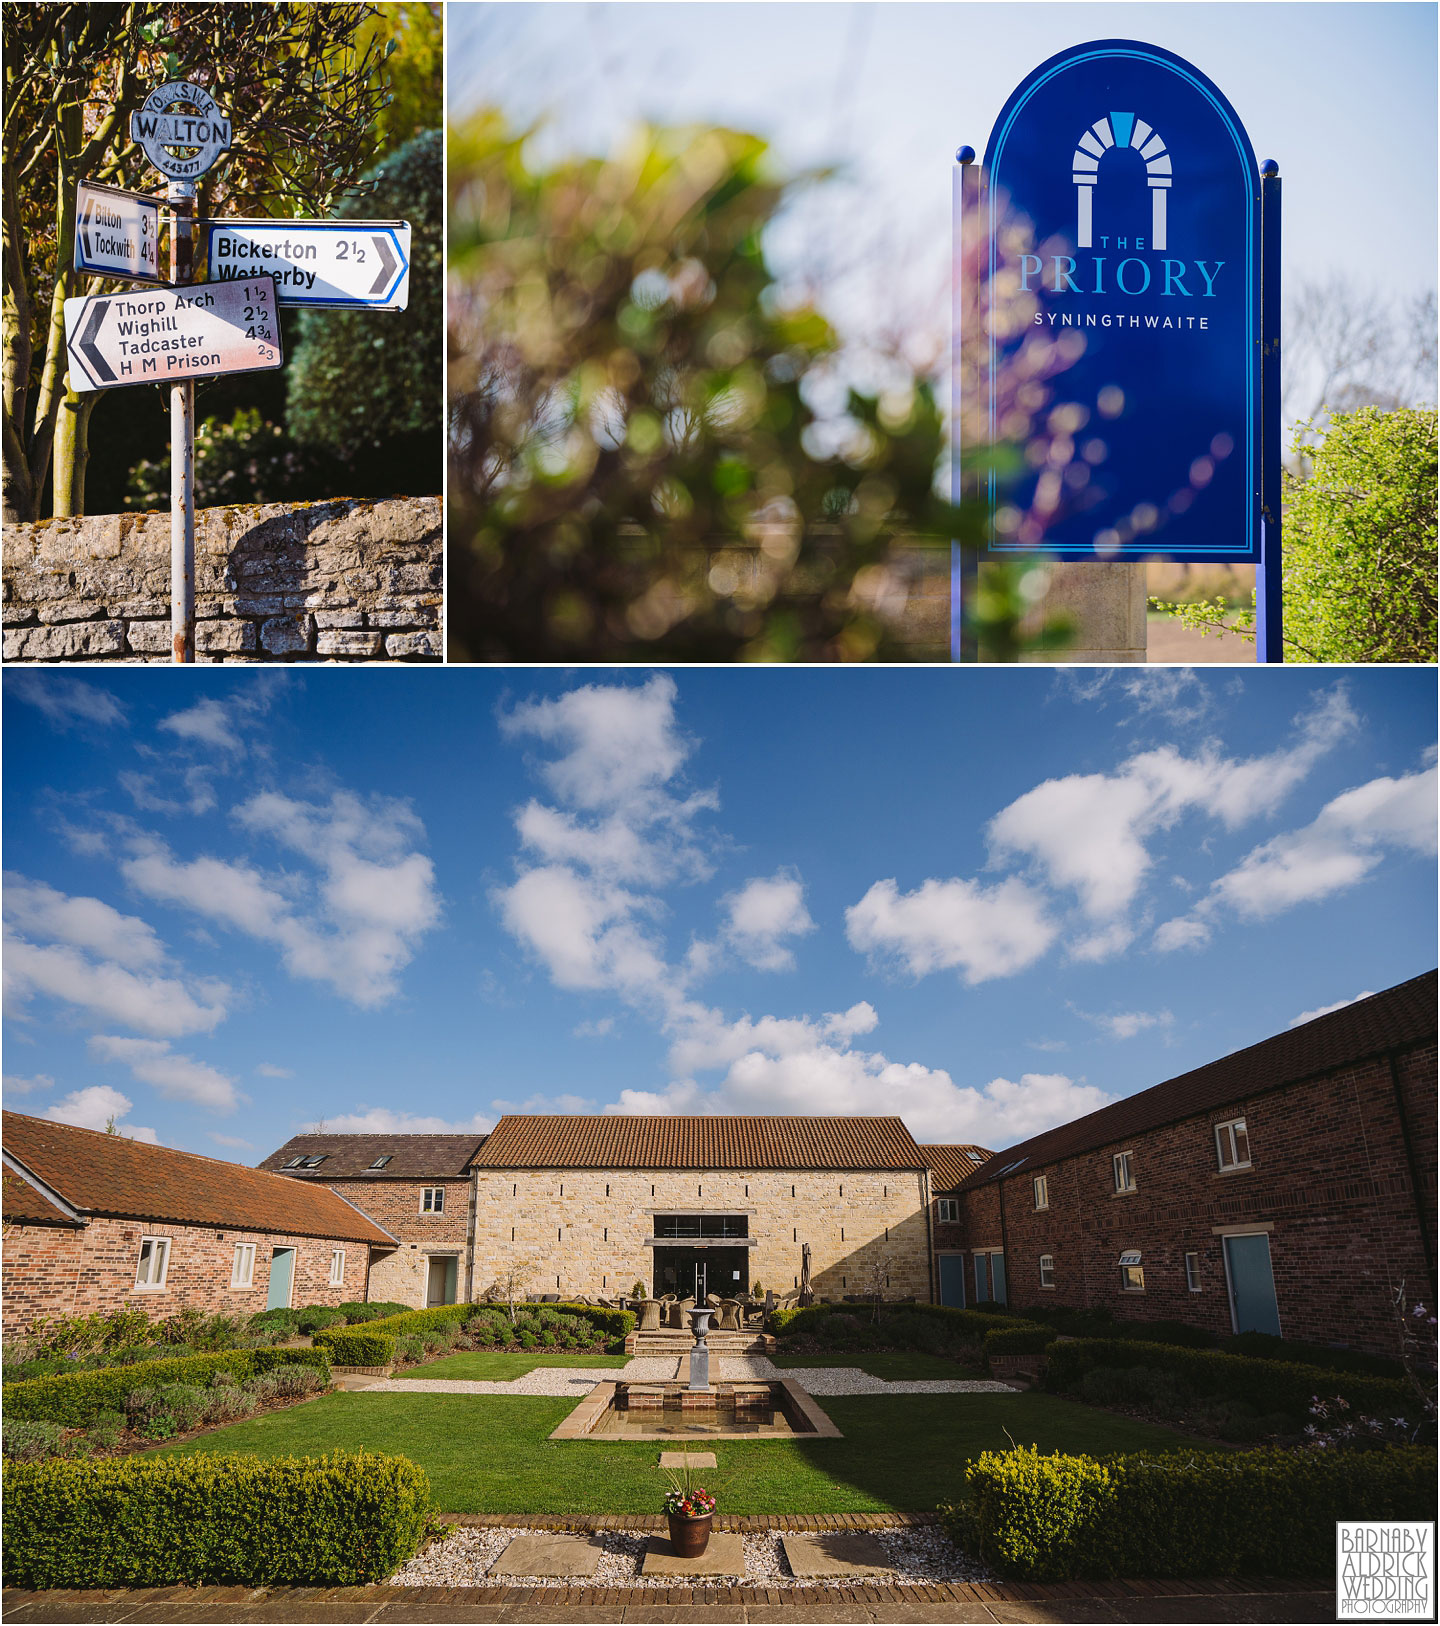 Priory Cottages Wedding venue wetherby, Exclusive wedding venue and cottages in Yorkshire, The Priory yorkshire